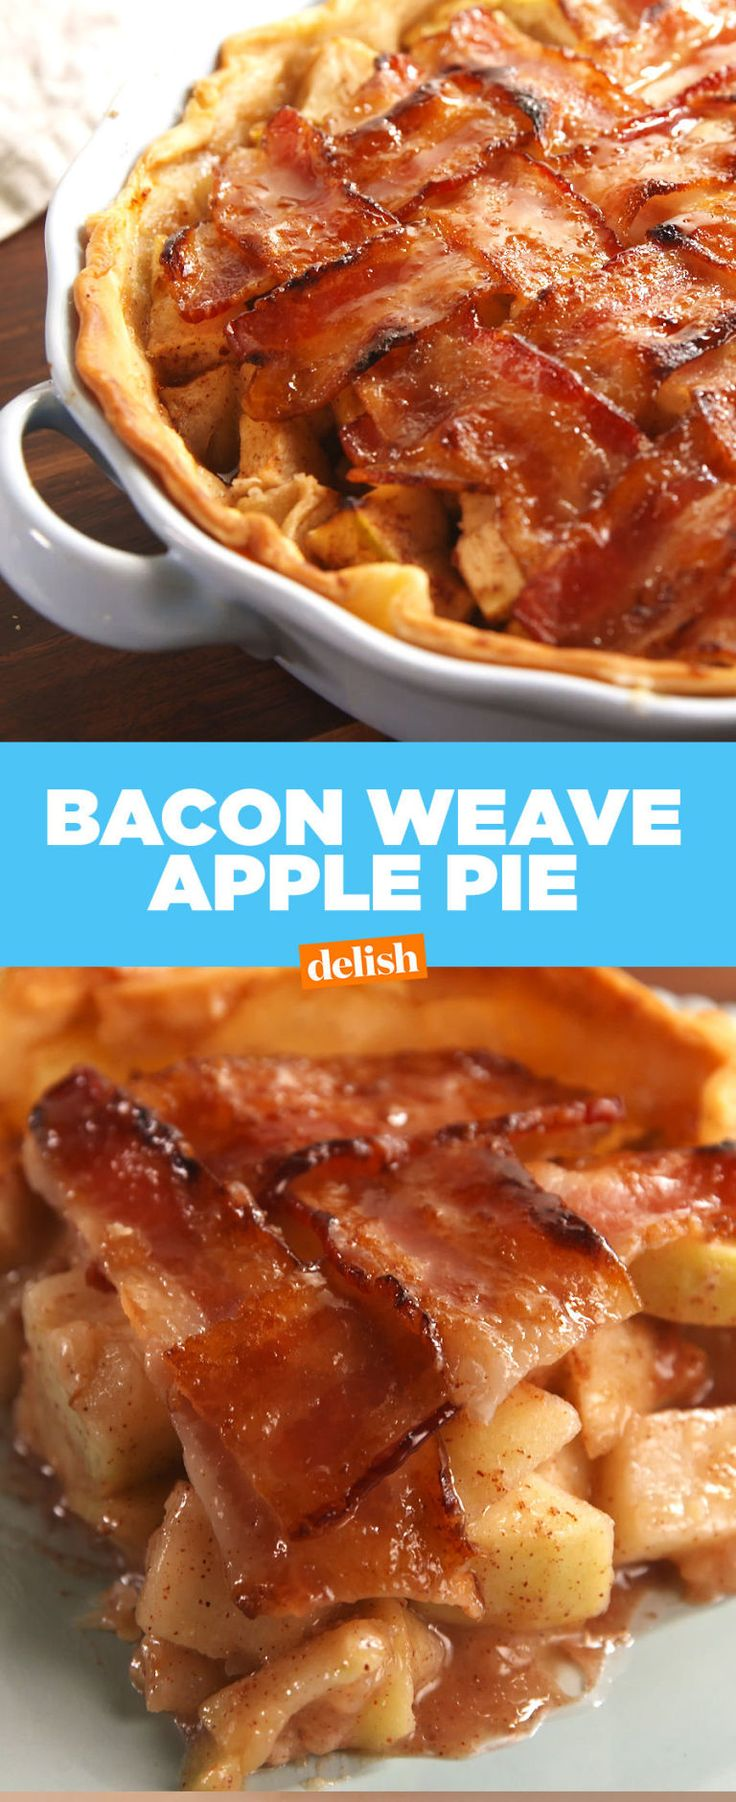 Best 25+ Bacon weave ideas on Pinterest | How to smoke sausage, Bacon explosion and Smoke grill